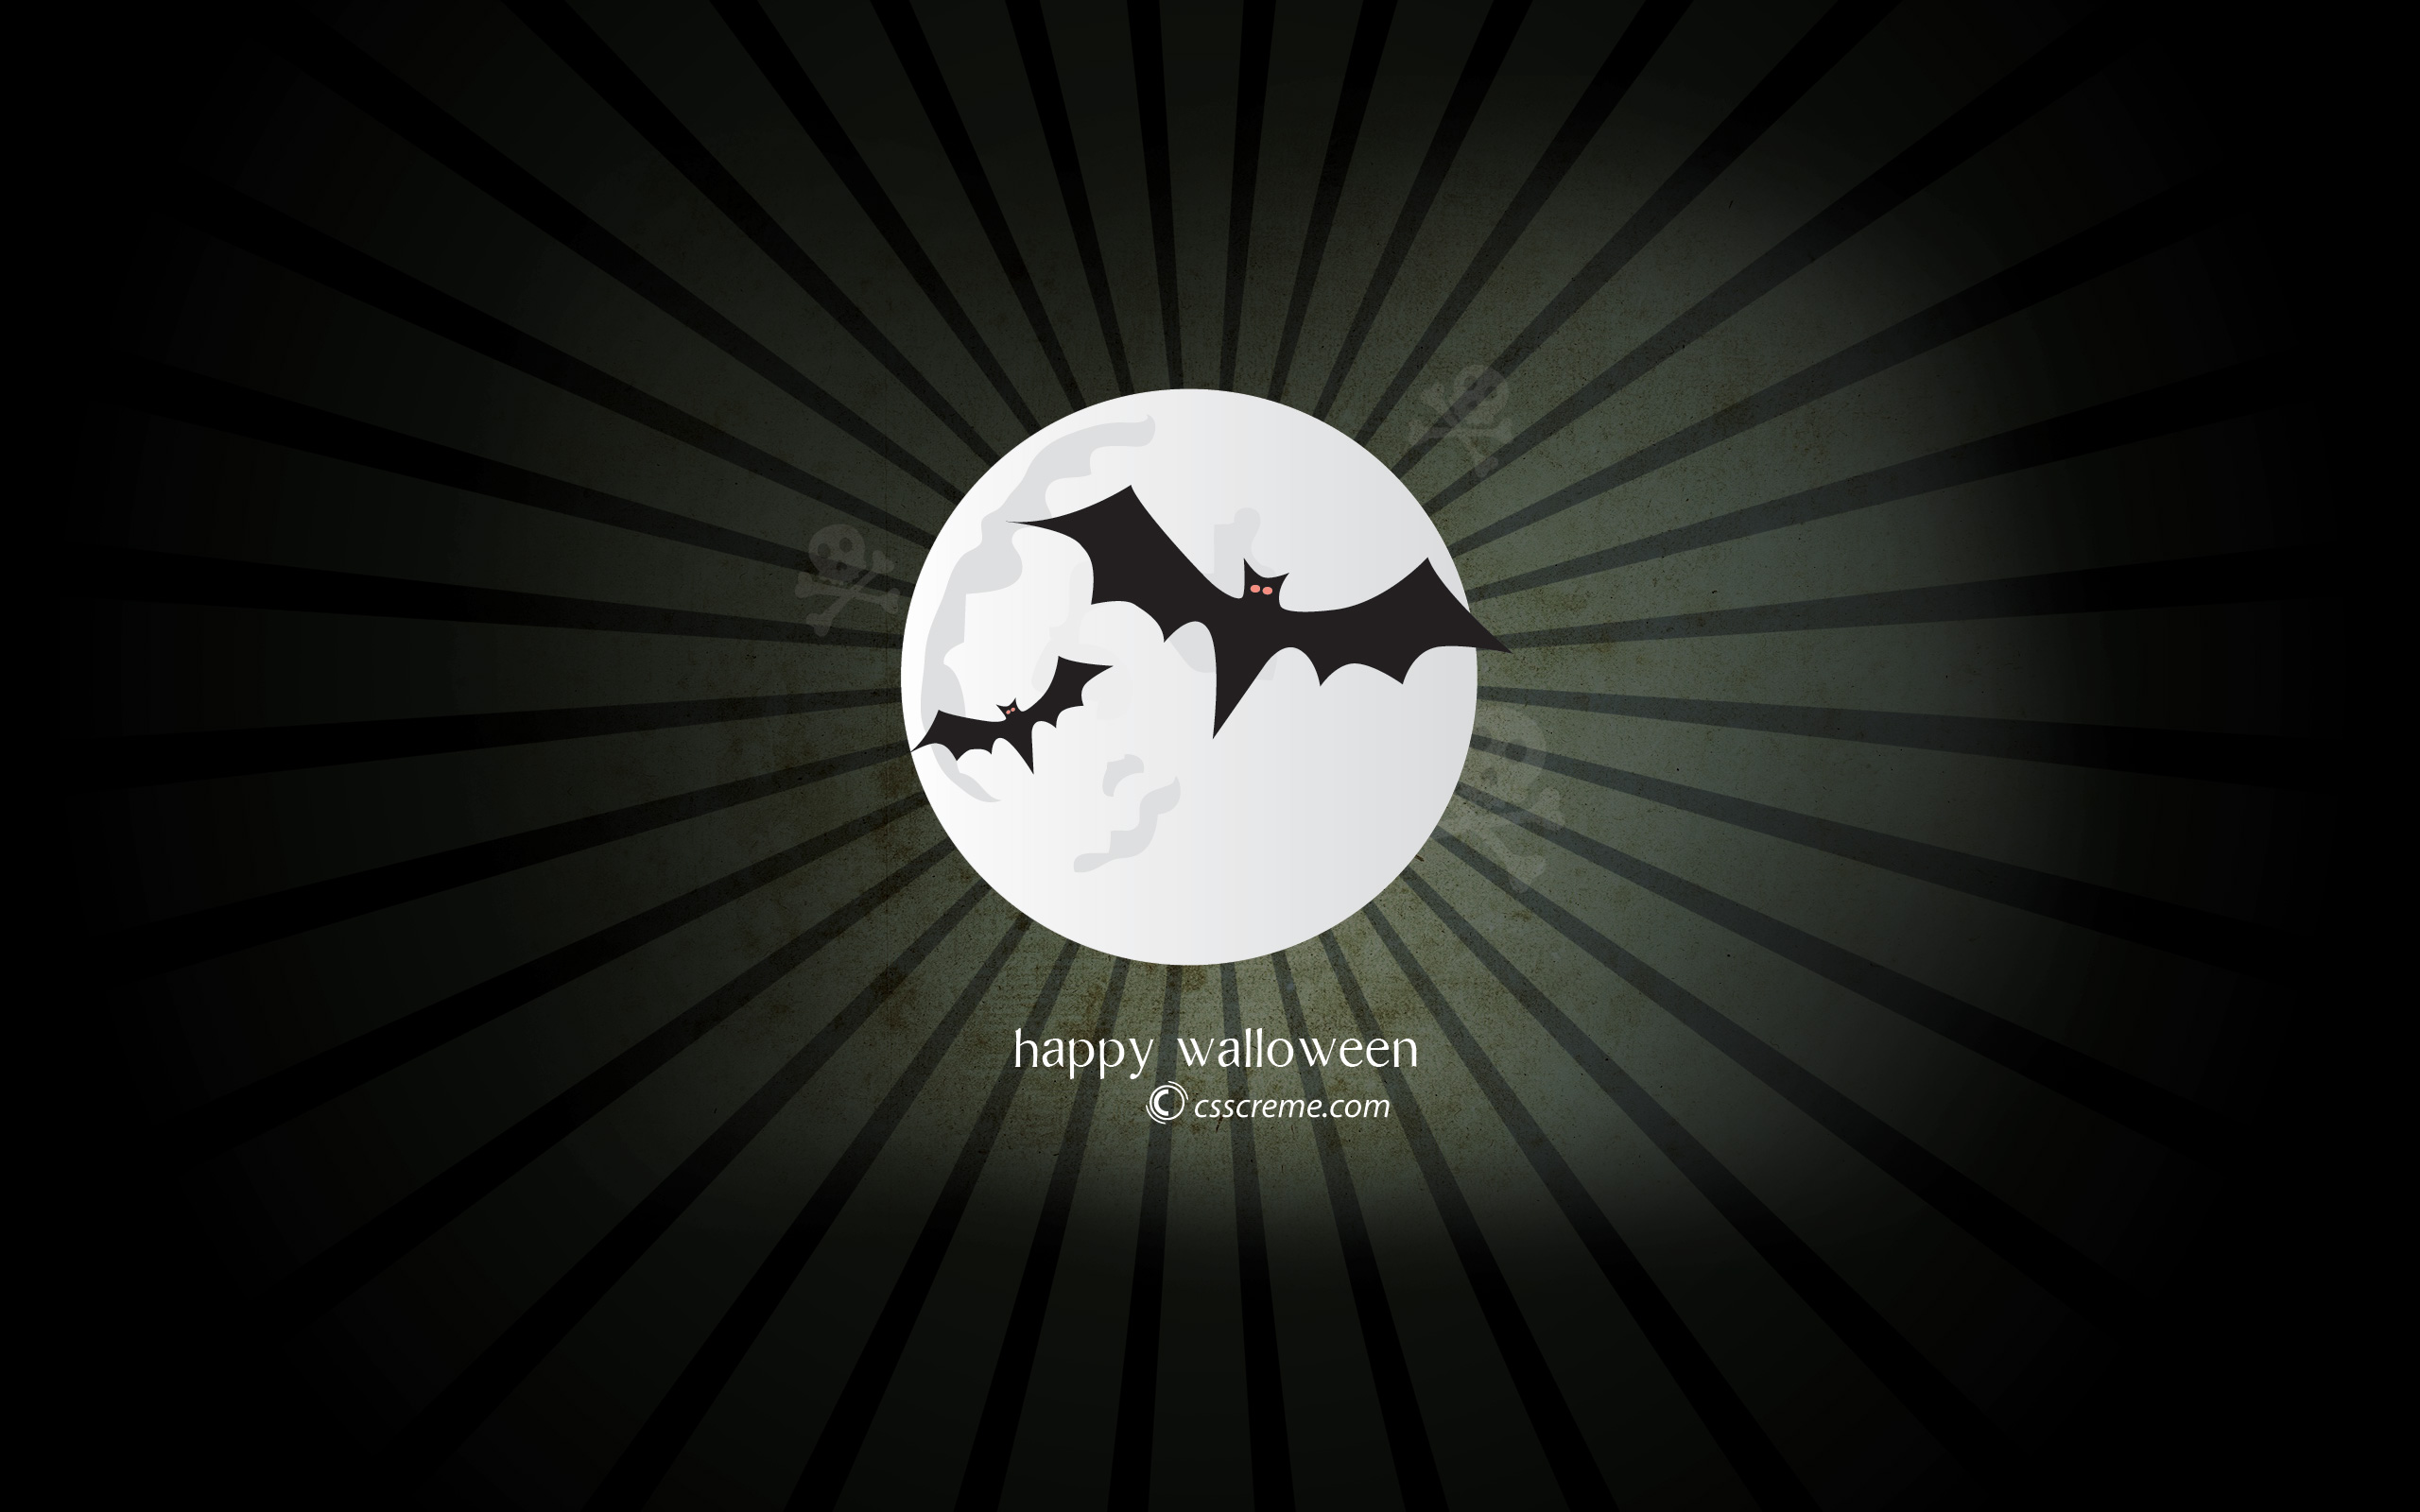 cool halloween wallpapers and halloween icons for free